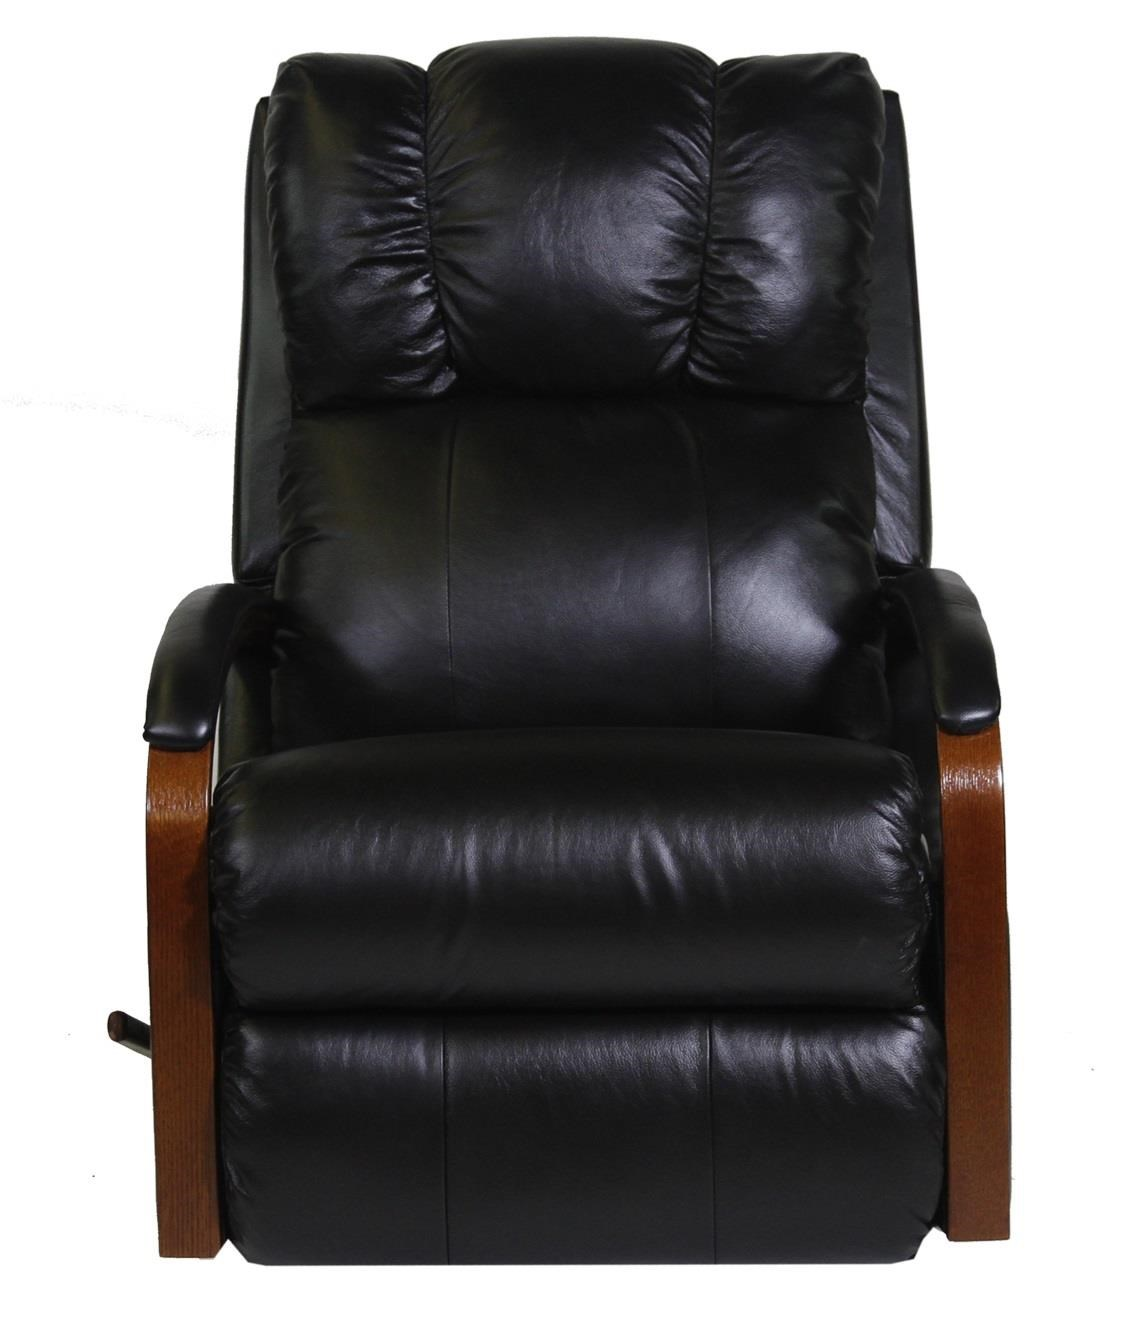 La-Z-Boy Harbor Town Rocker Recliner - Item Number 010799 DL981050 007  sc 1 st  HomeWorld Furniture & La-Z-Boy Harbor Town Rocker Recliner - HomeWorld Furniture - Three ... islam-shia.org